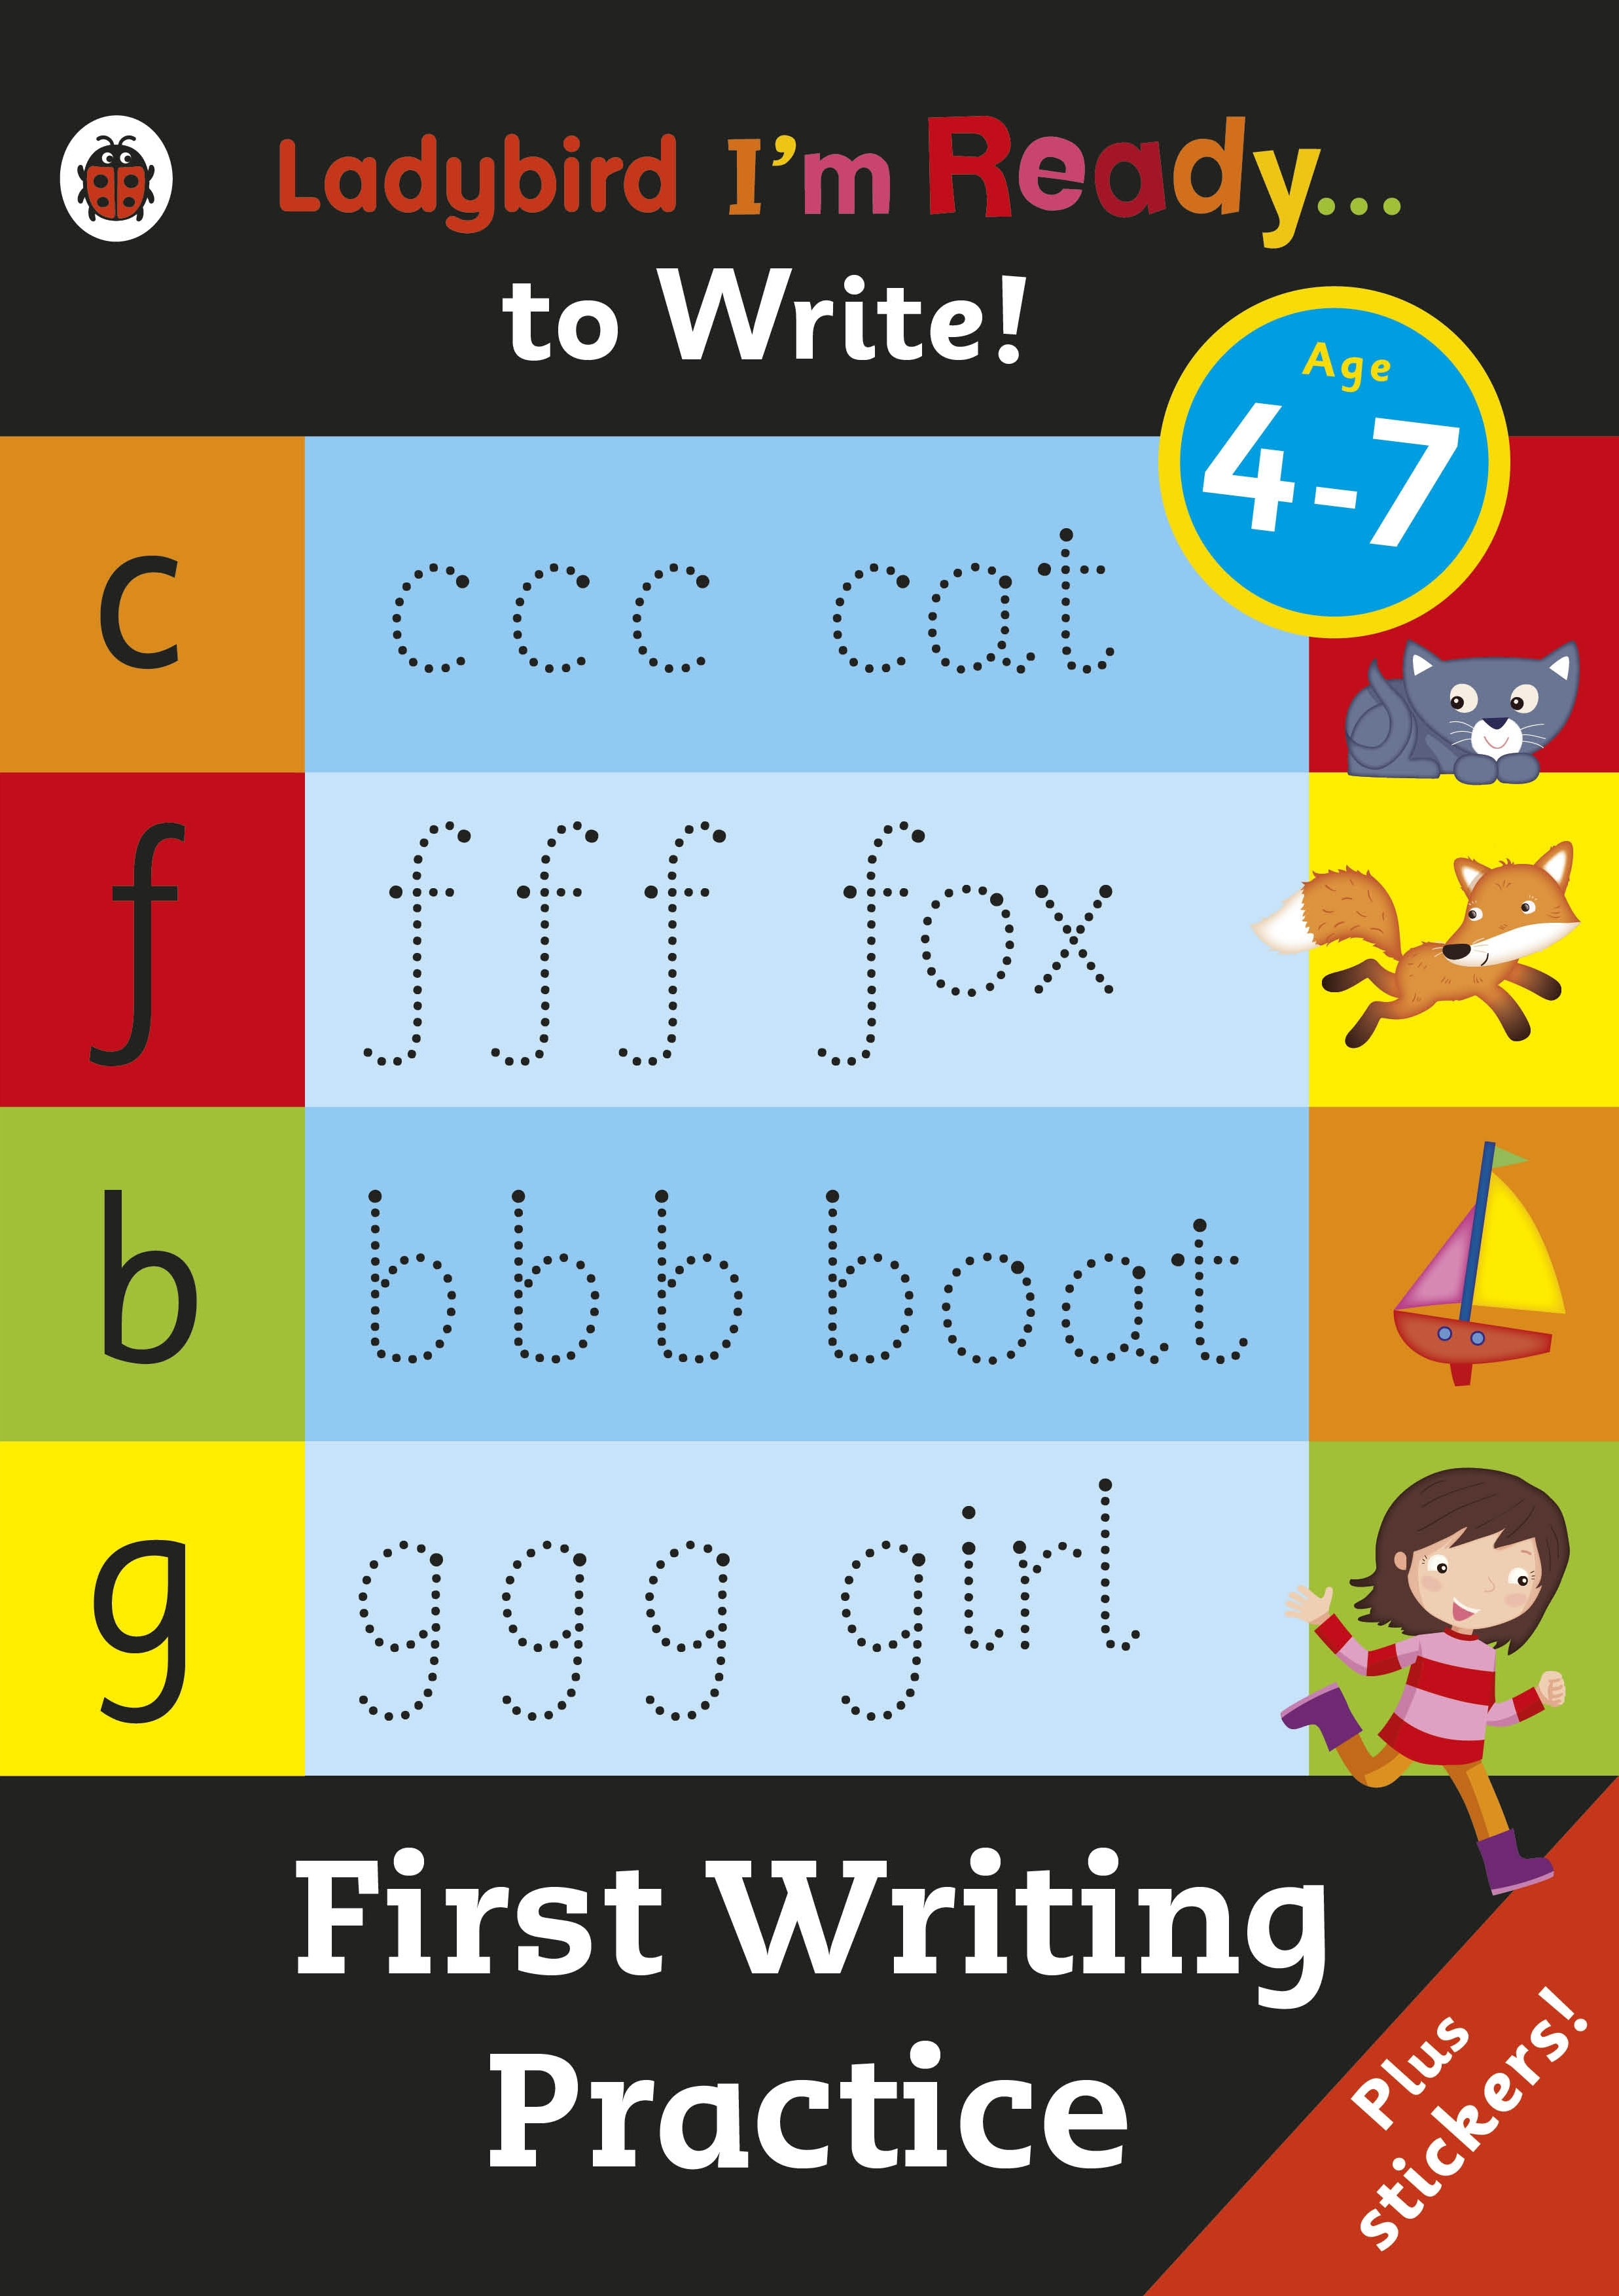 Do you know of any writing practice books?